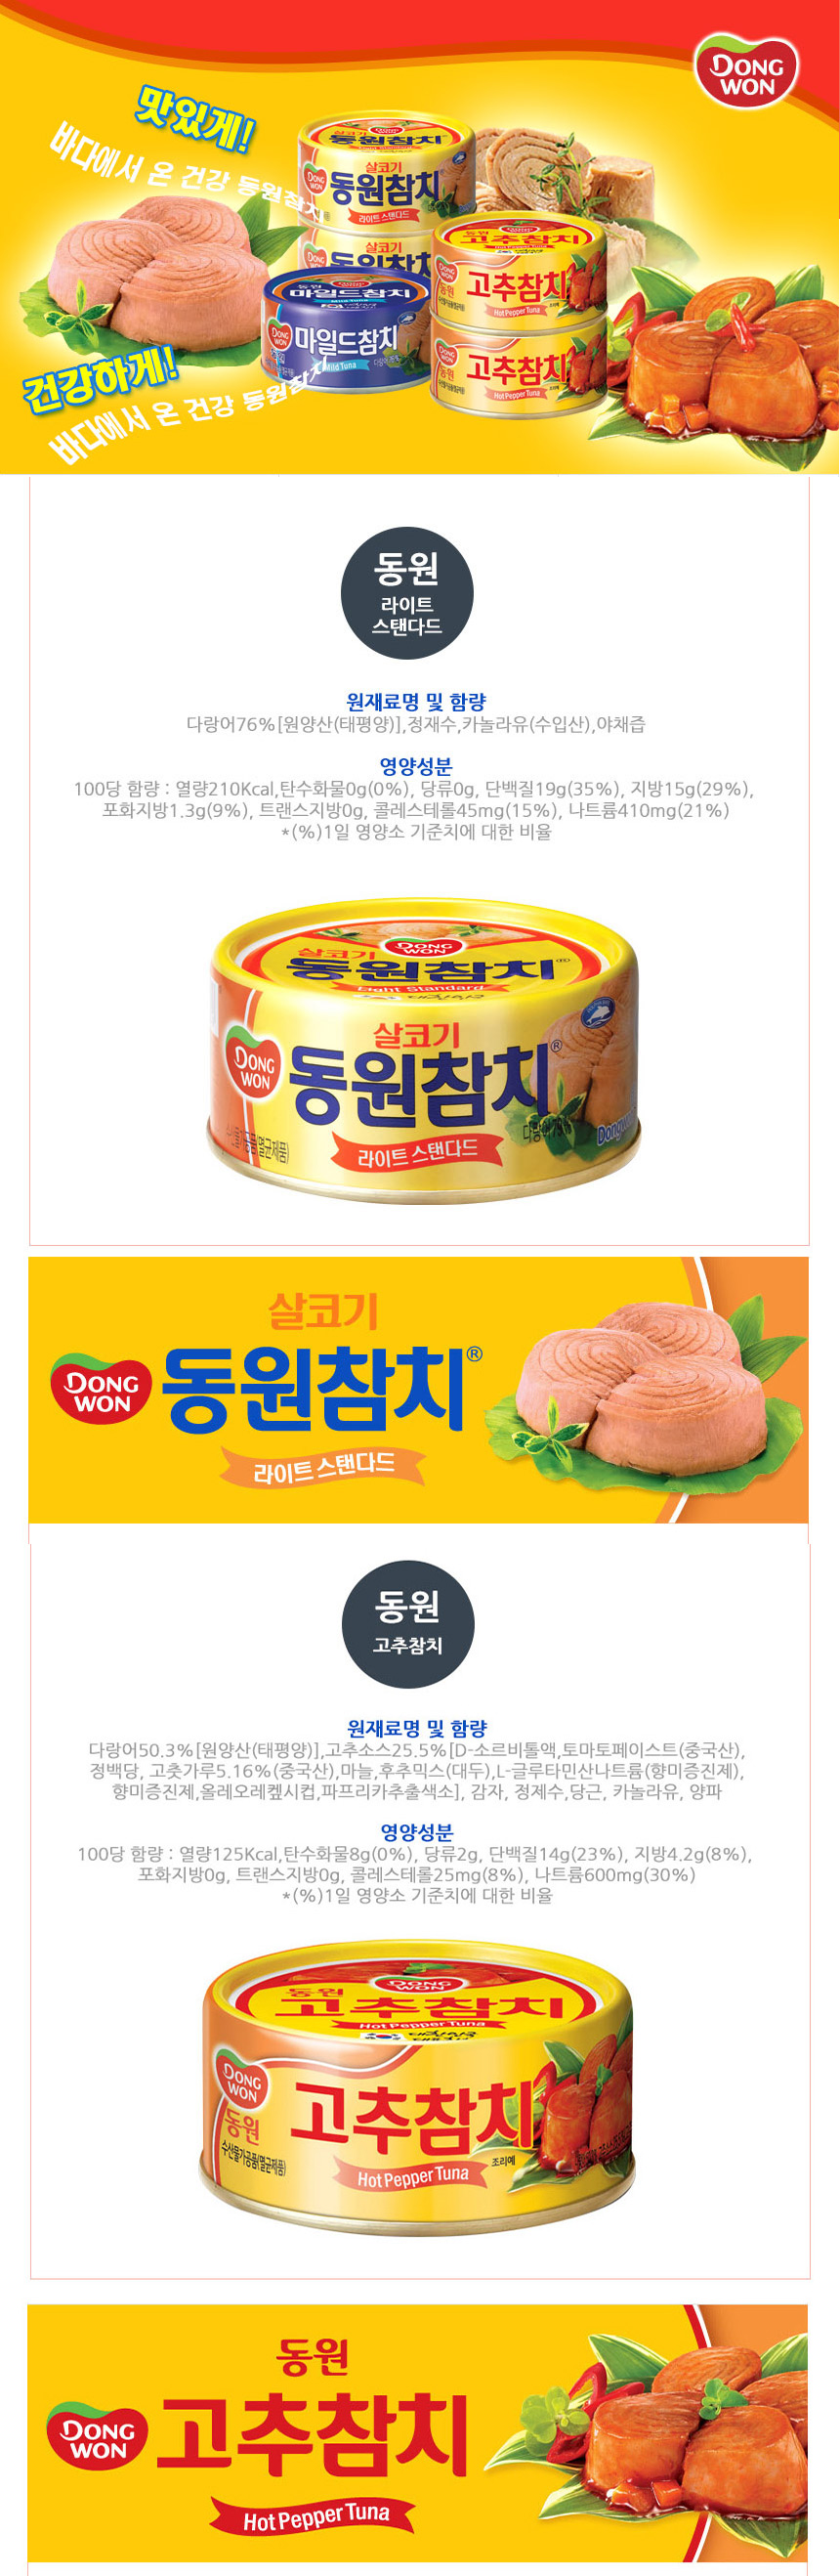 [ Dongwon ] Dongwon TunaLight 150g x 3pc + Dongwon SpicyTuna 150g x 3pc